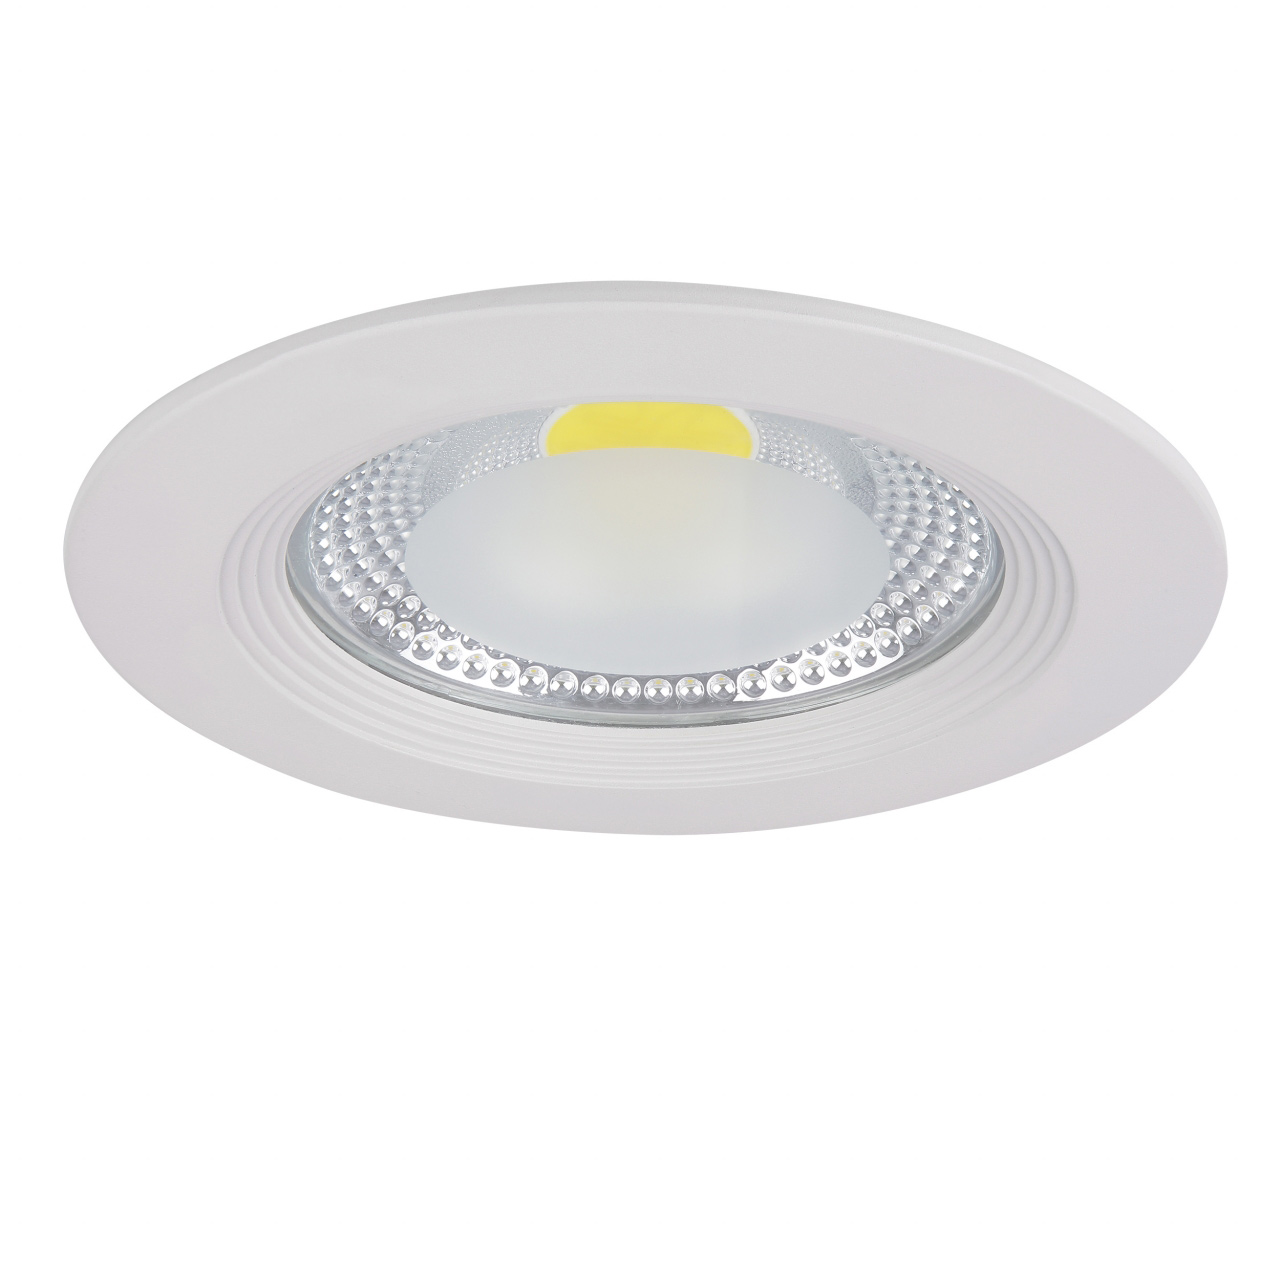 Светильник Forto LED 15W 1430LM 55G 4000K Lightstar 223154